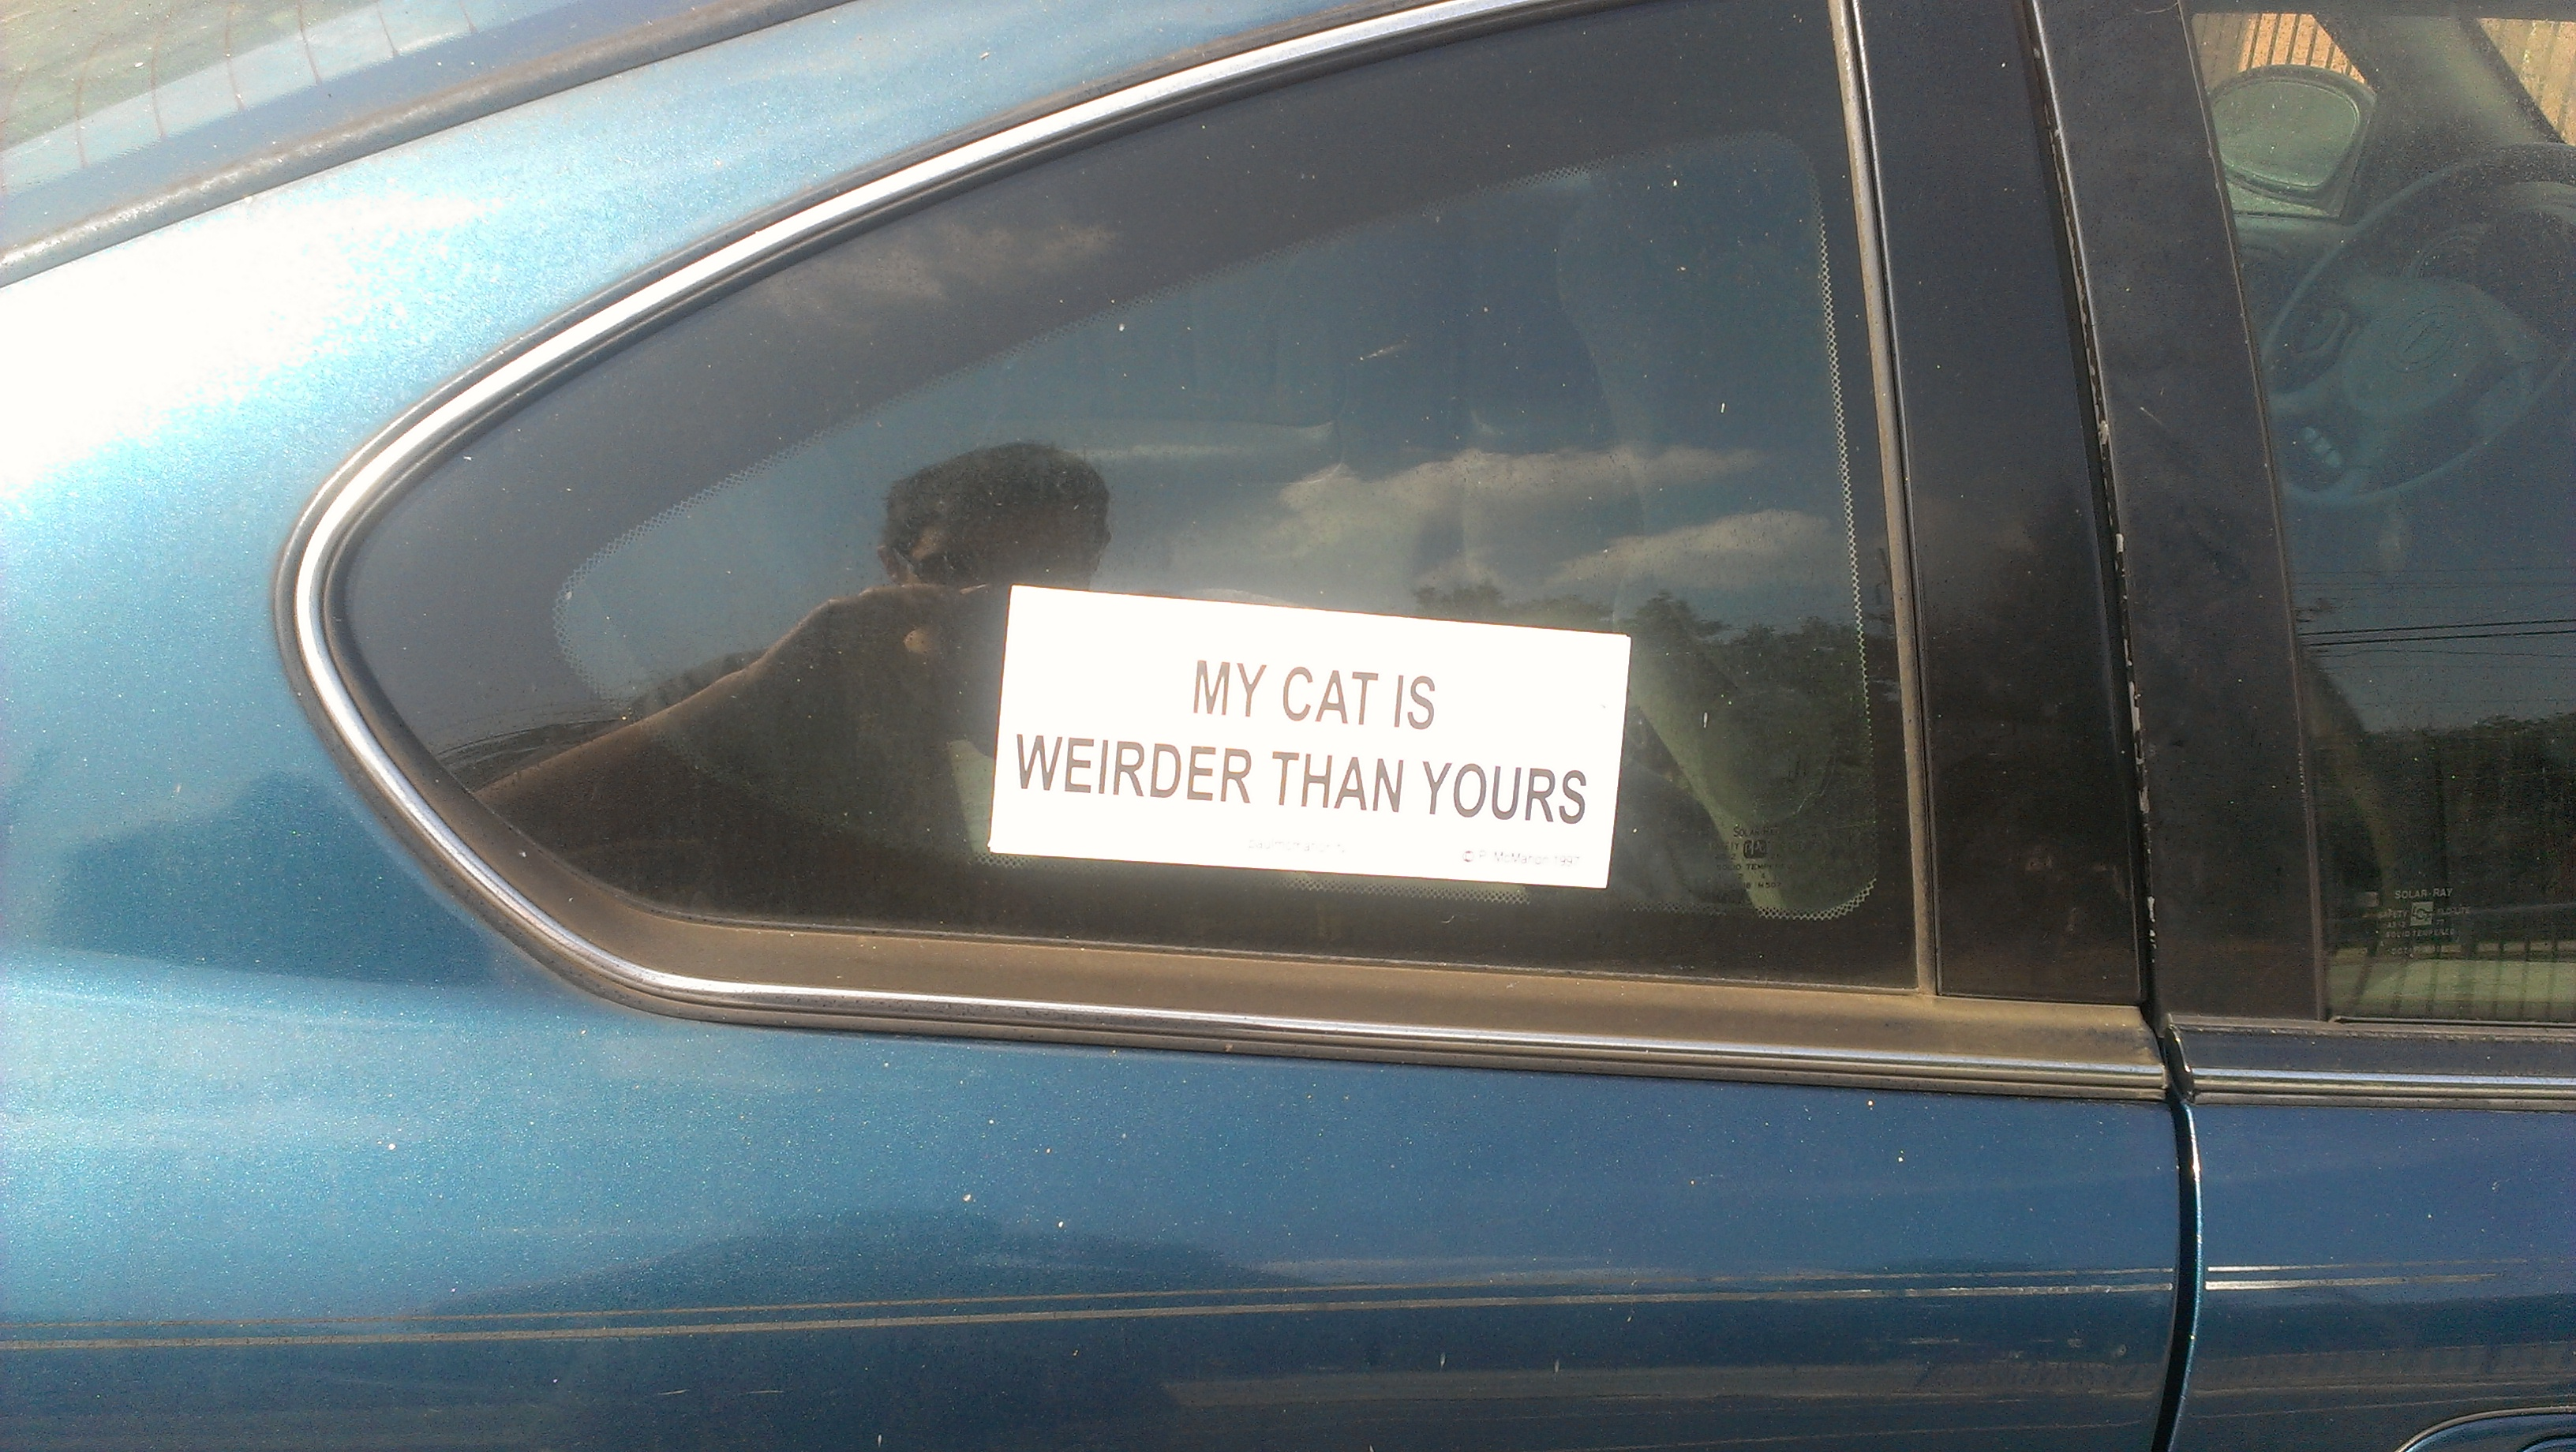 Sign location: Parking lot at Thinking Man, Decatur. Sign purpose: Making me laugh. Grade: F. Comments: My cat is infinitely superior to yours in every aspect and would beat up your cat for being weird.